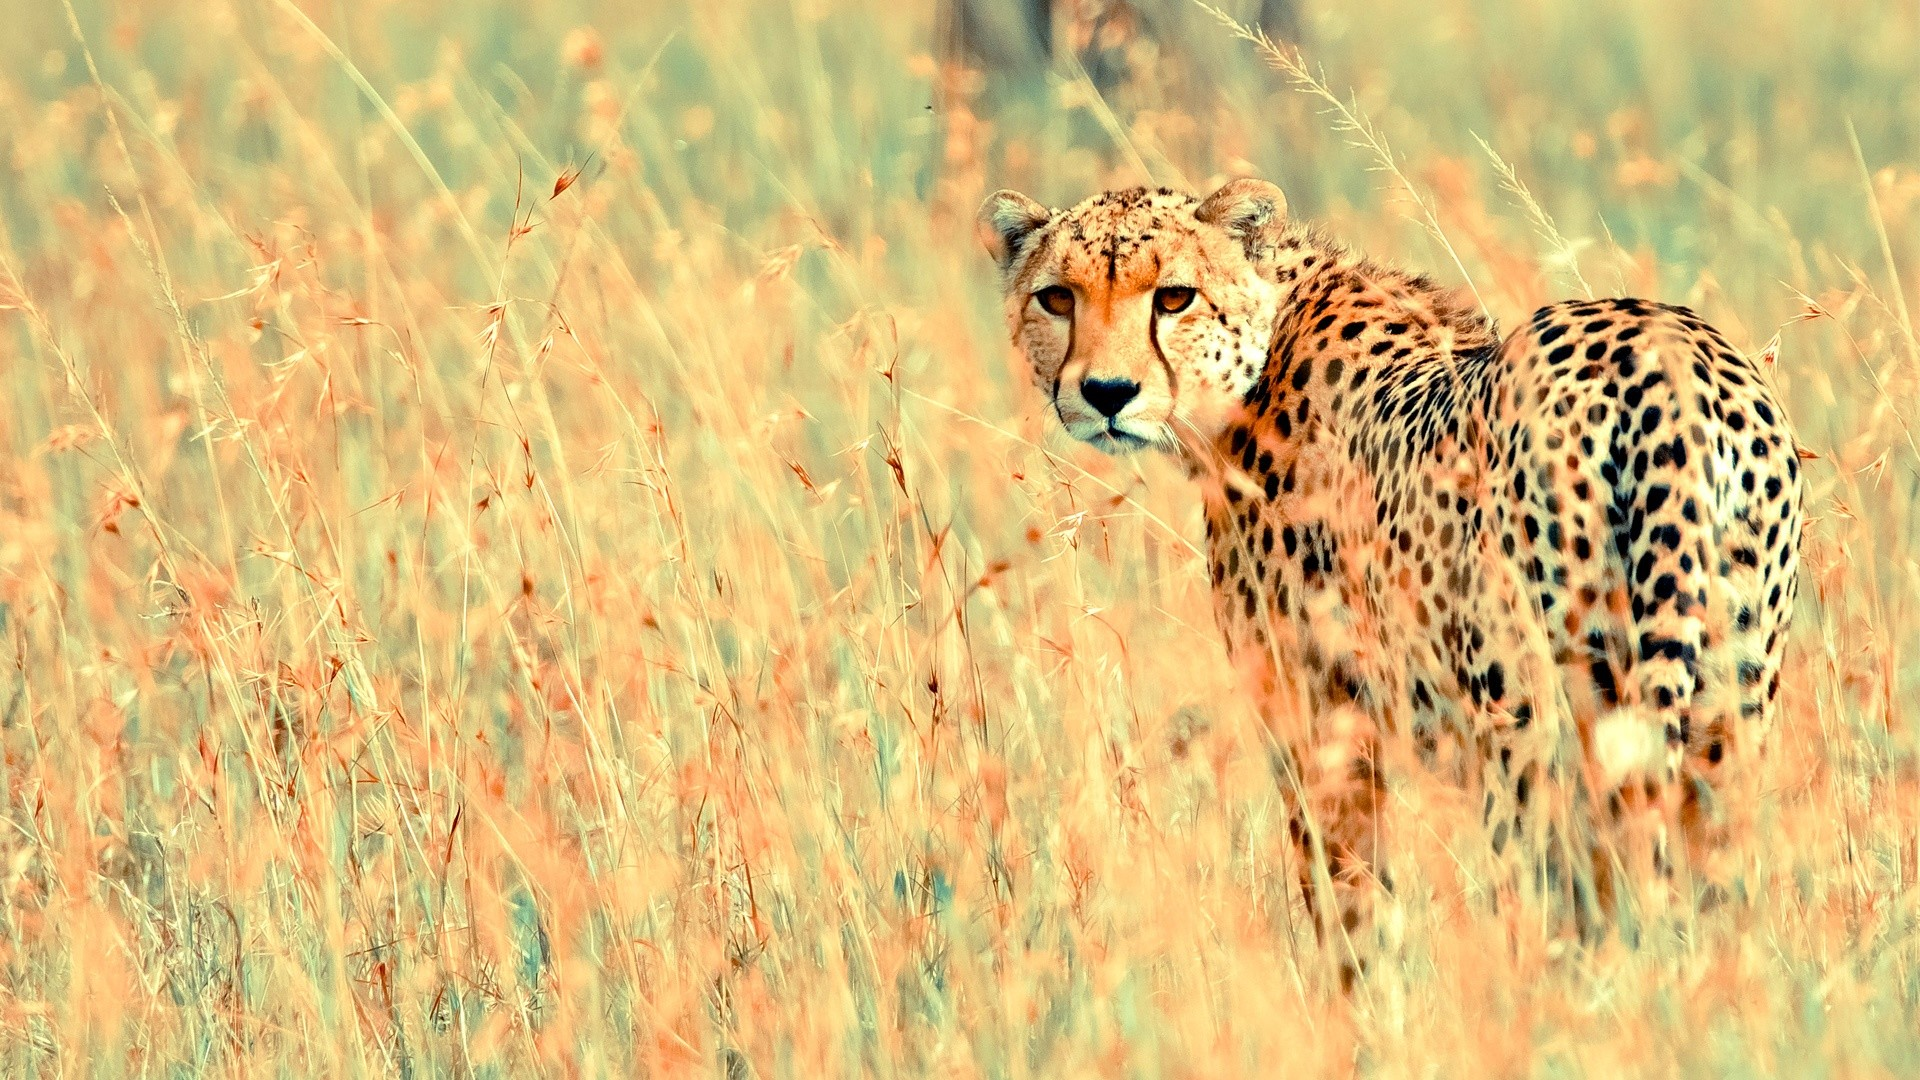 1920x1080 beautiful cheetah animal wallpaper | Desktop Backgrounds for Free HD  Wallpaper | wall--art